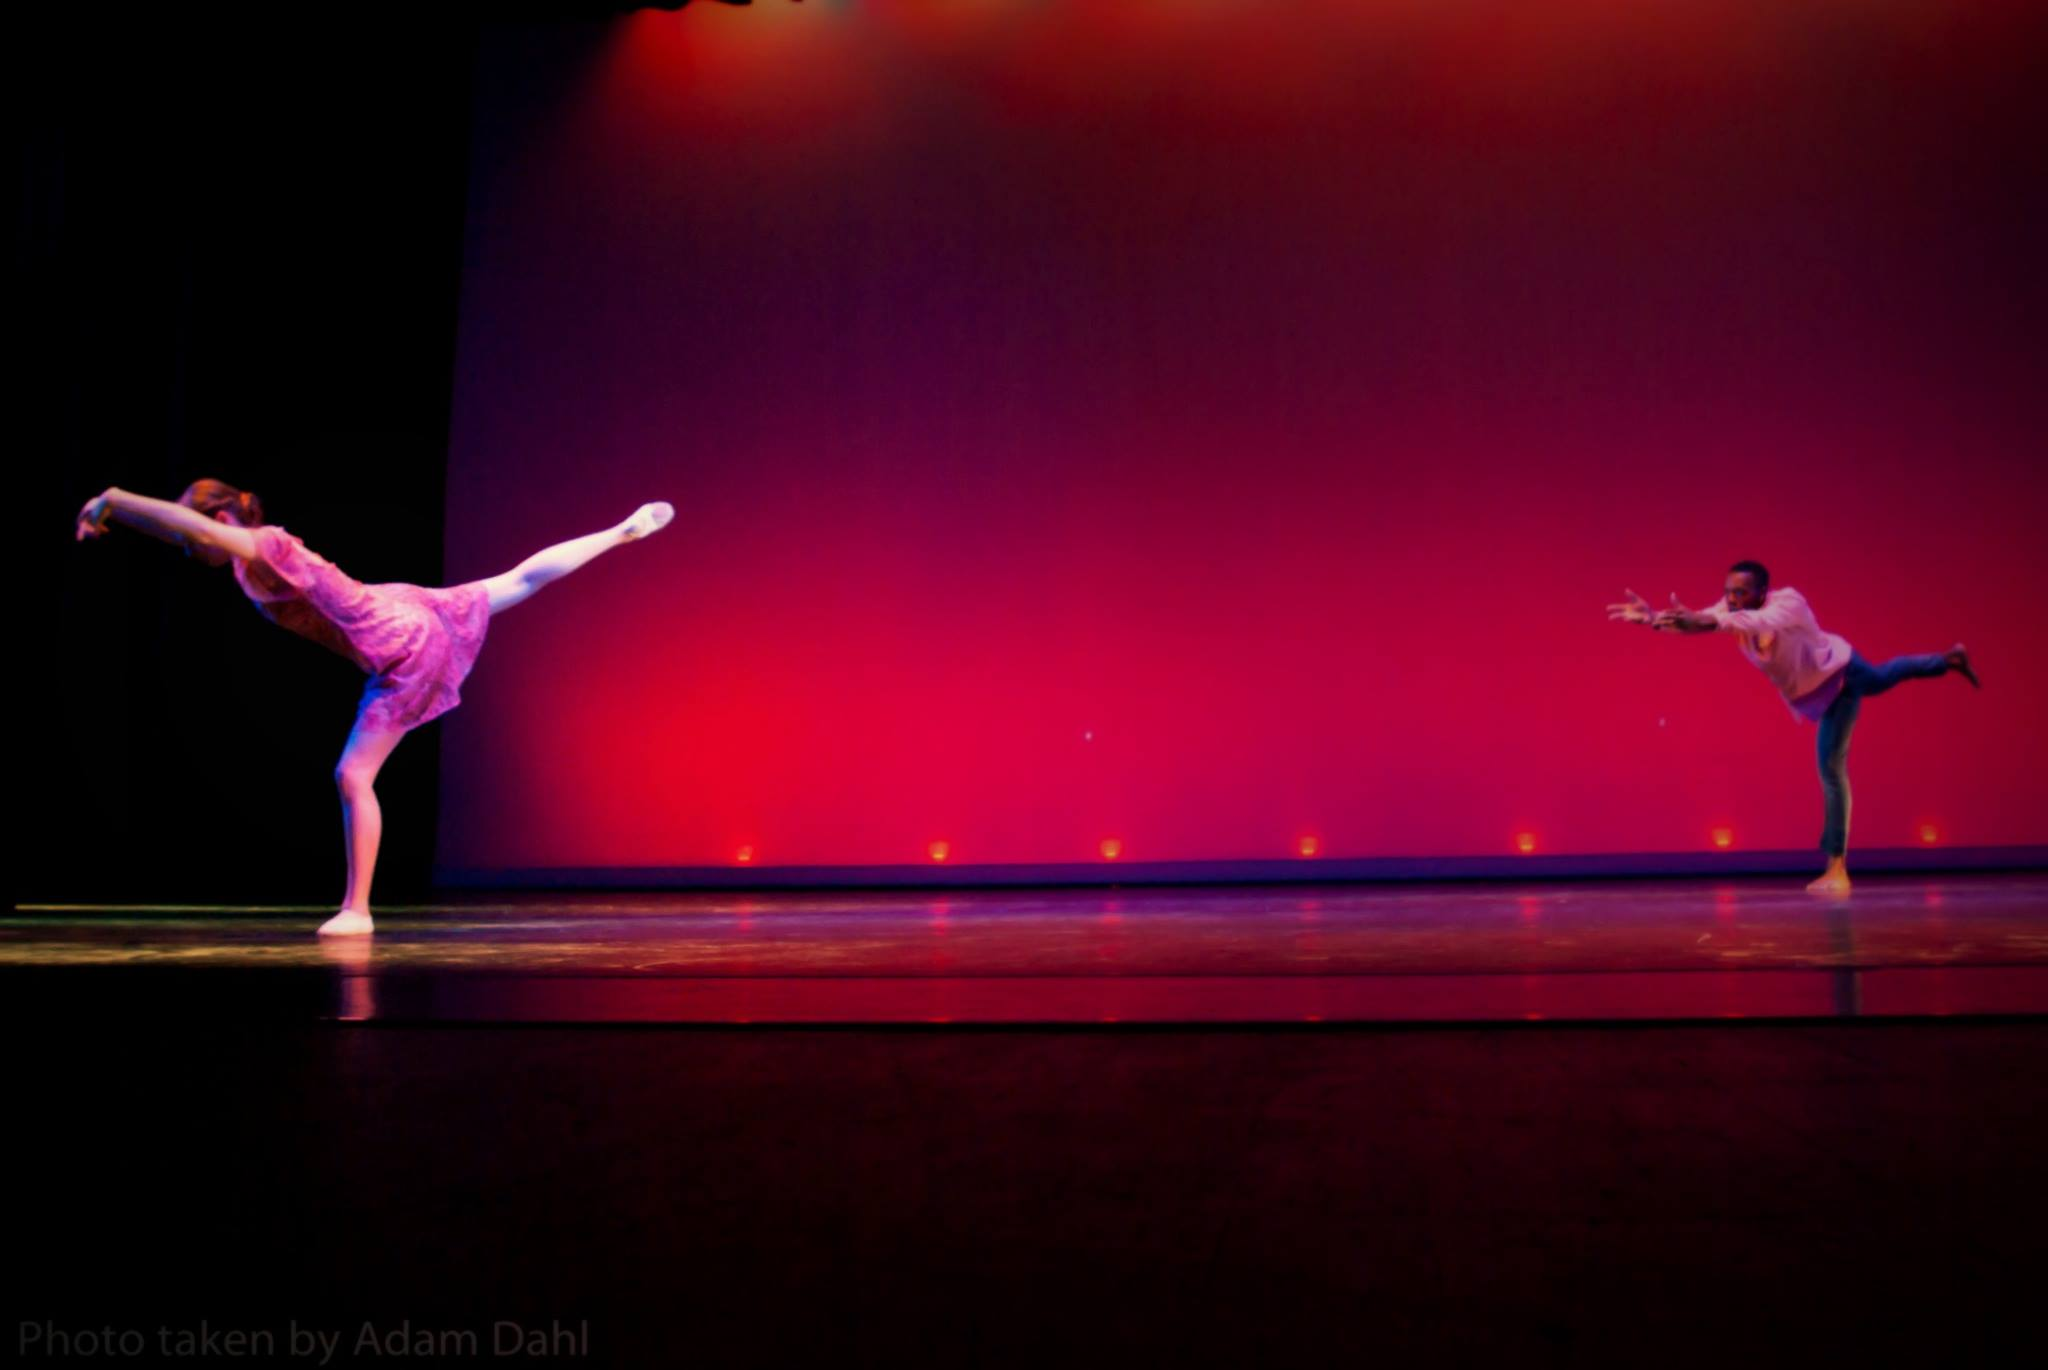 Dancer, Contemporary, Dance, Ballet, Arabesque, Extension, Duet, Partner